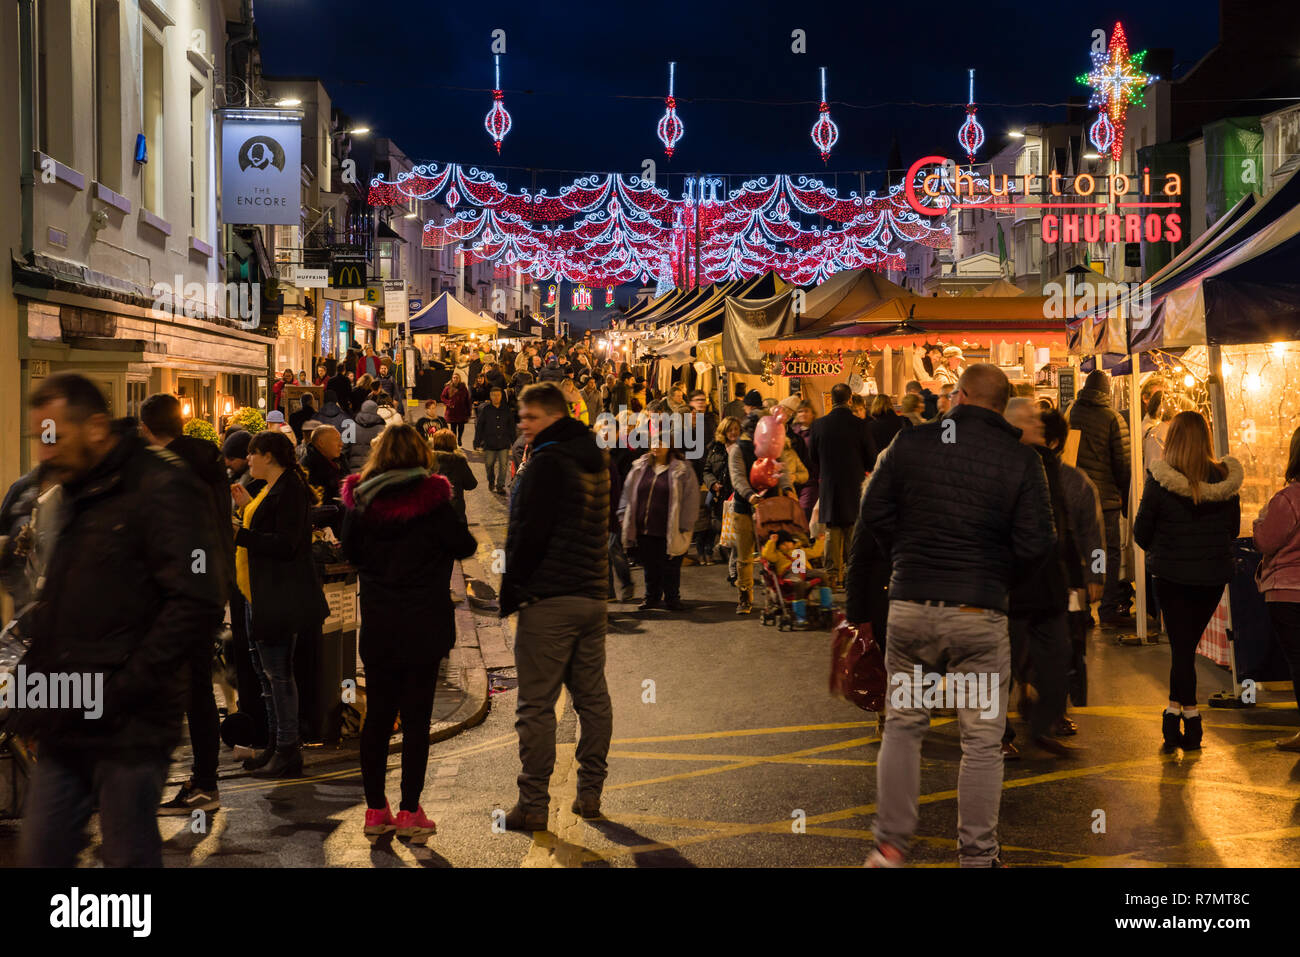 Crowds at the Victorian Christmas Market and lights at night, Bridge Street, Stratford upon Avon, England Stock Photo